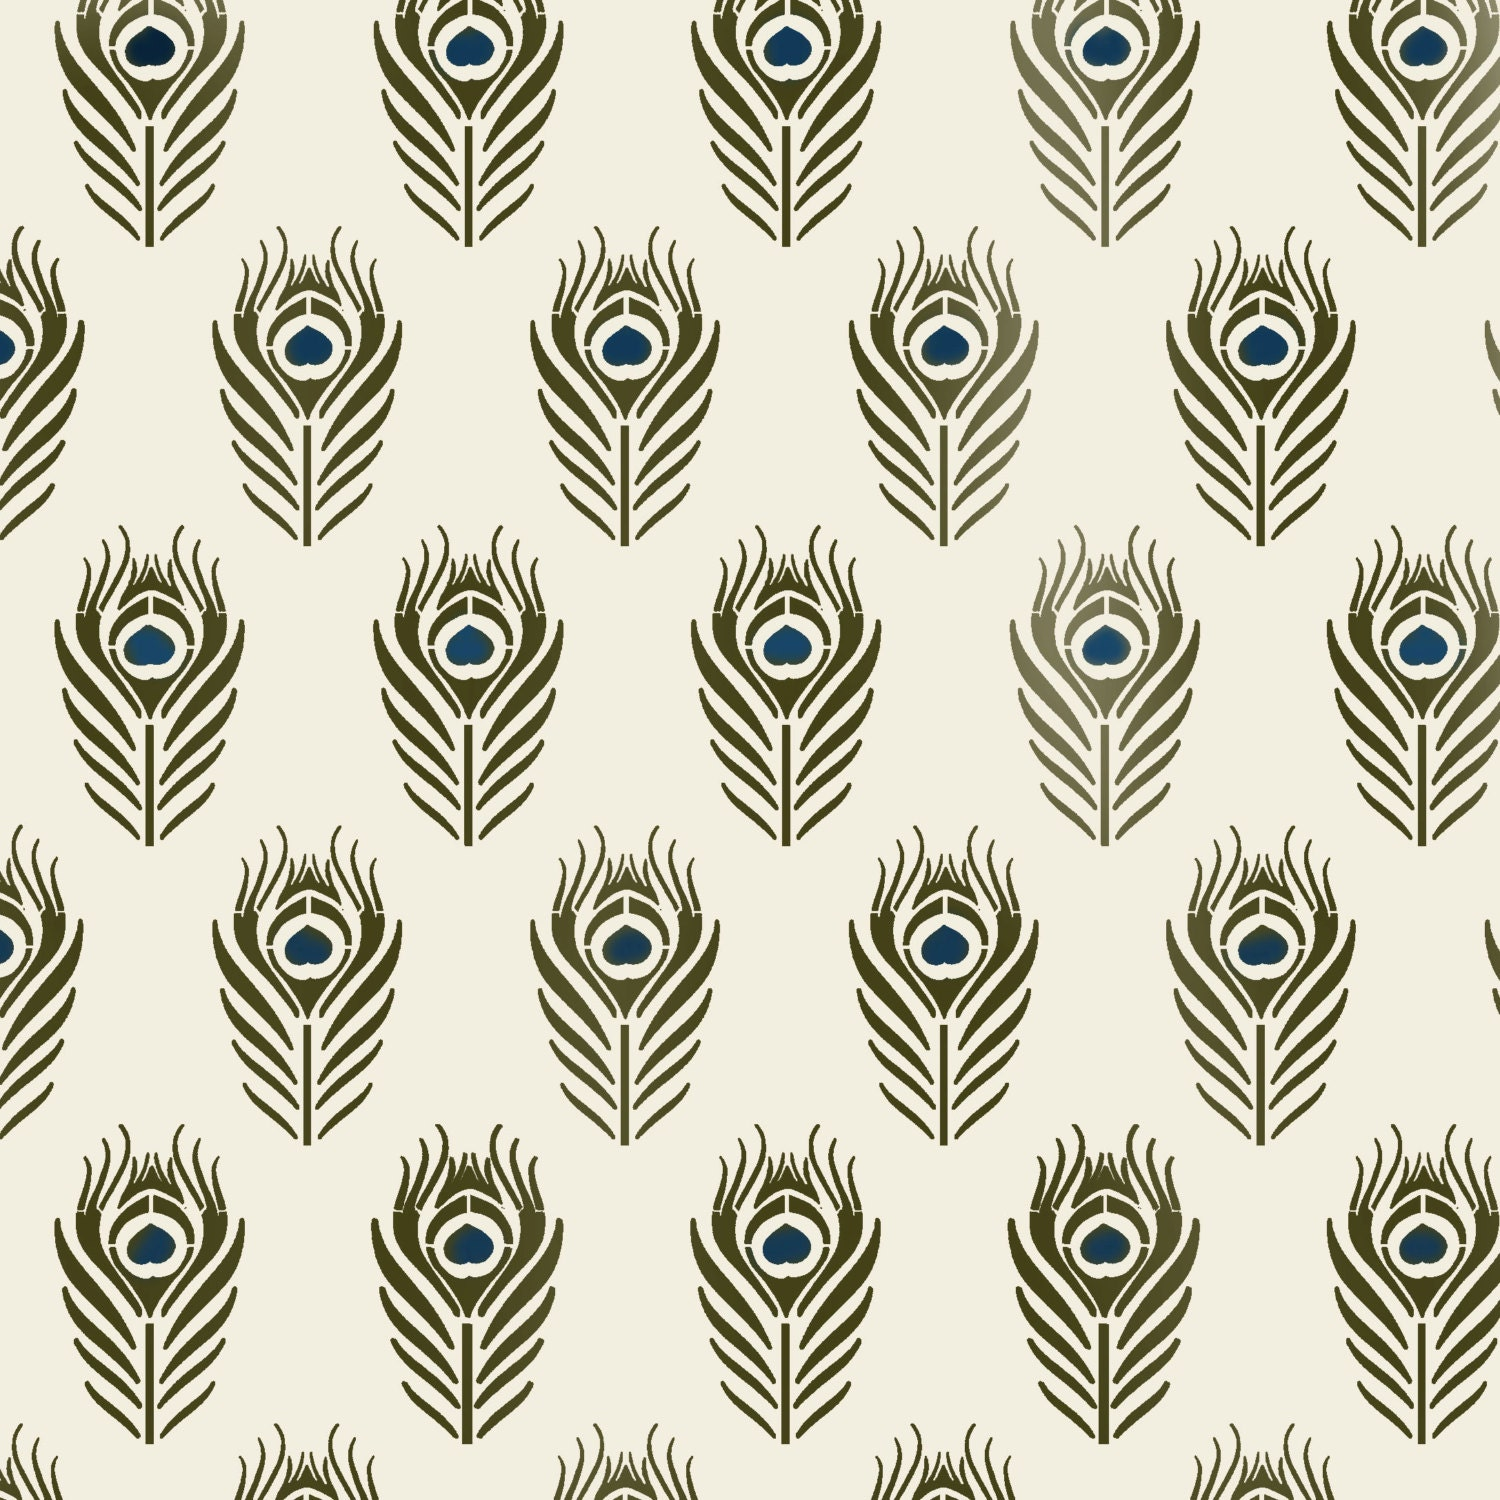 Peacock feather stencil repeat pattern decorating stencil zoom amipublicfo Image collections